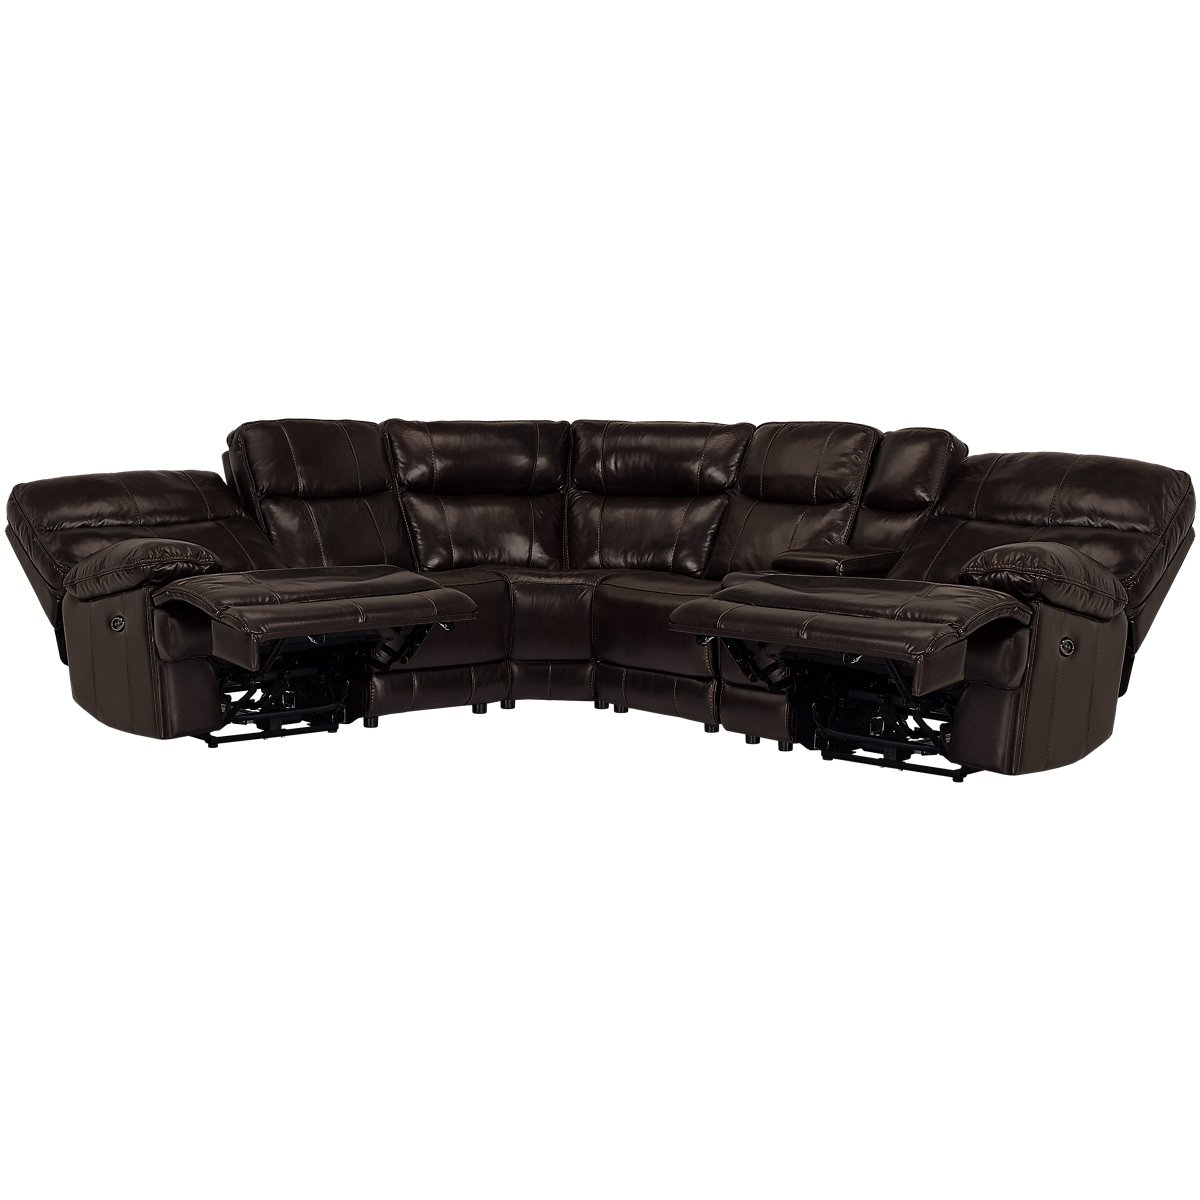 post back black sectional sofa mid vintage daybed sof sold tufted tumblr century mall fremont vinyl